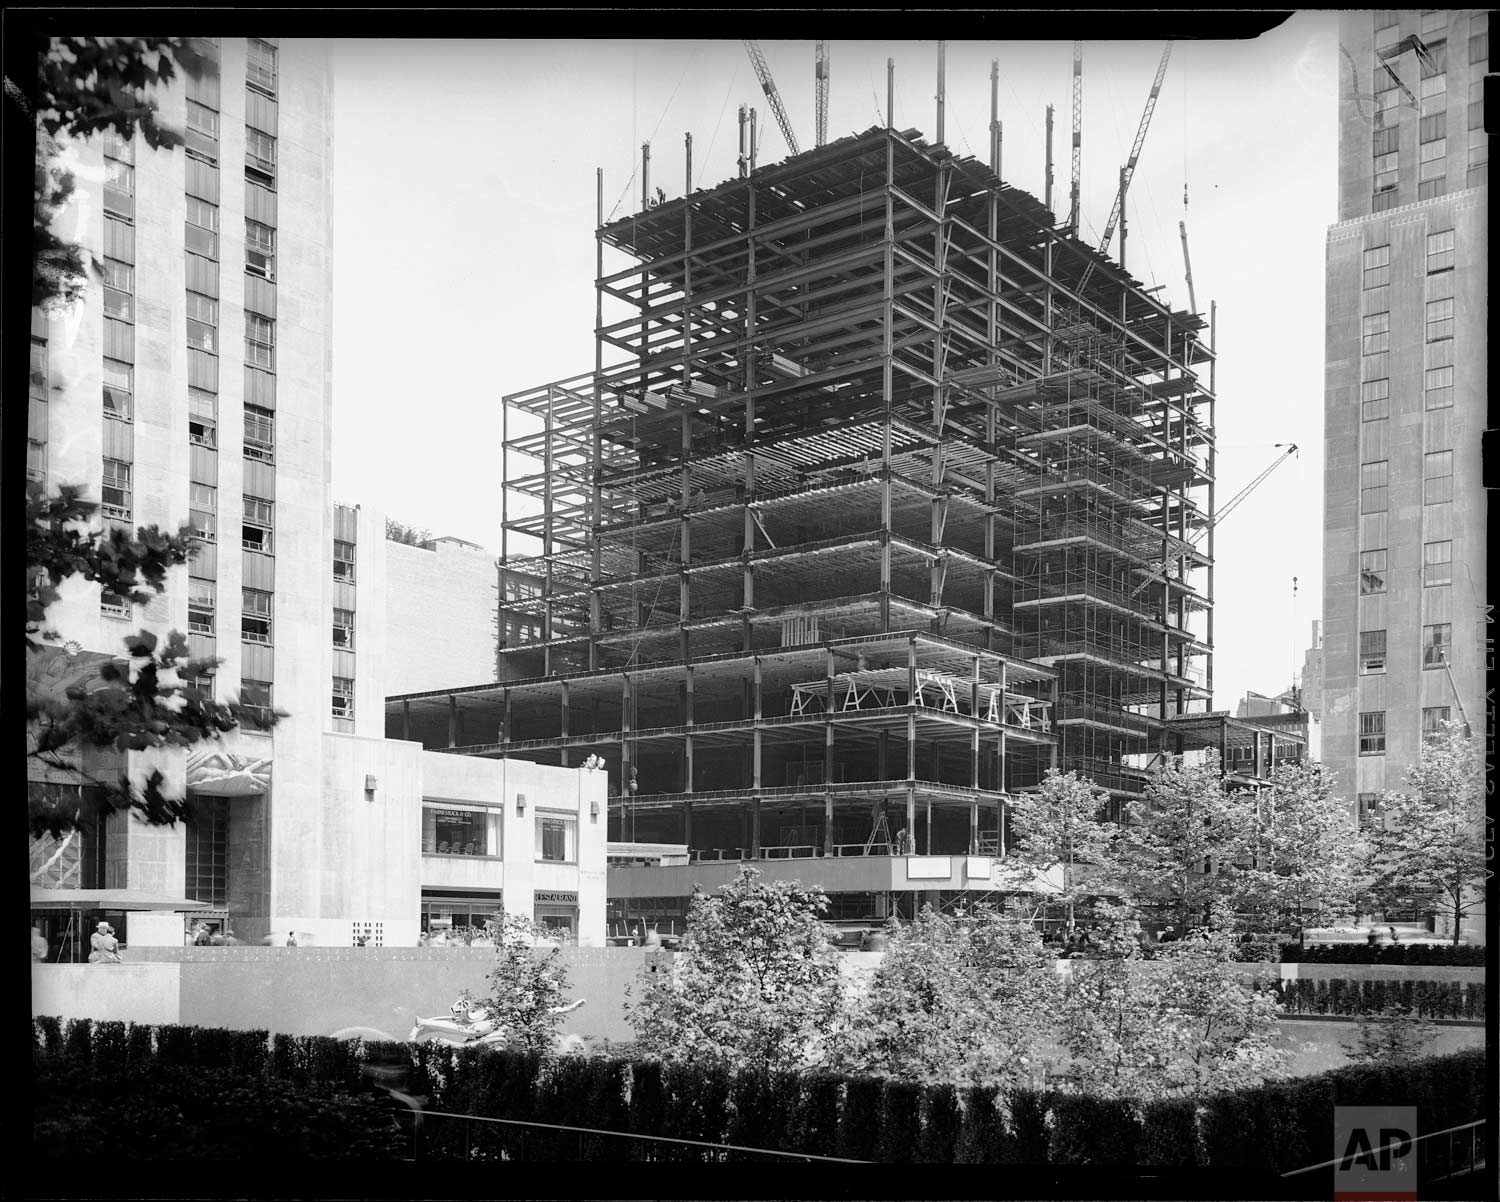 The swiftly growing steel skeleton of the new Associated Press building is shown under construction at Rockefeller Center, New York, June 10, 1938. (AP Photo/Corporate Archives/Joseph W. Brady)